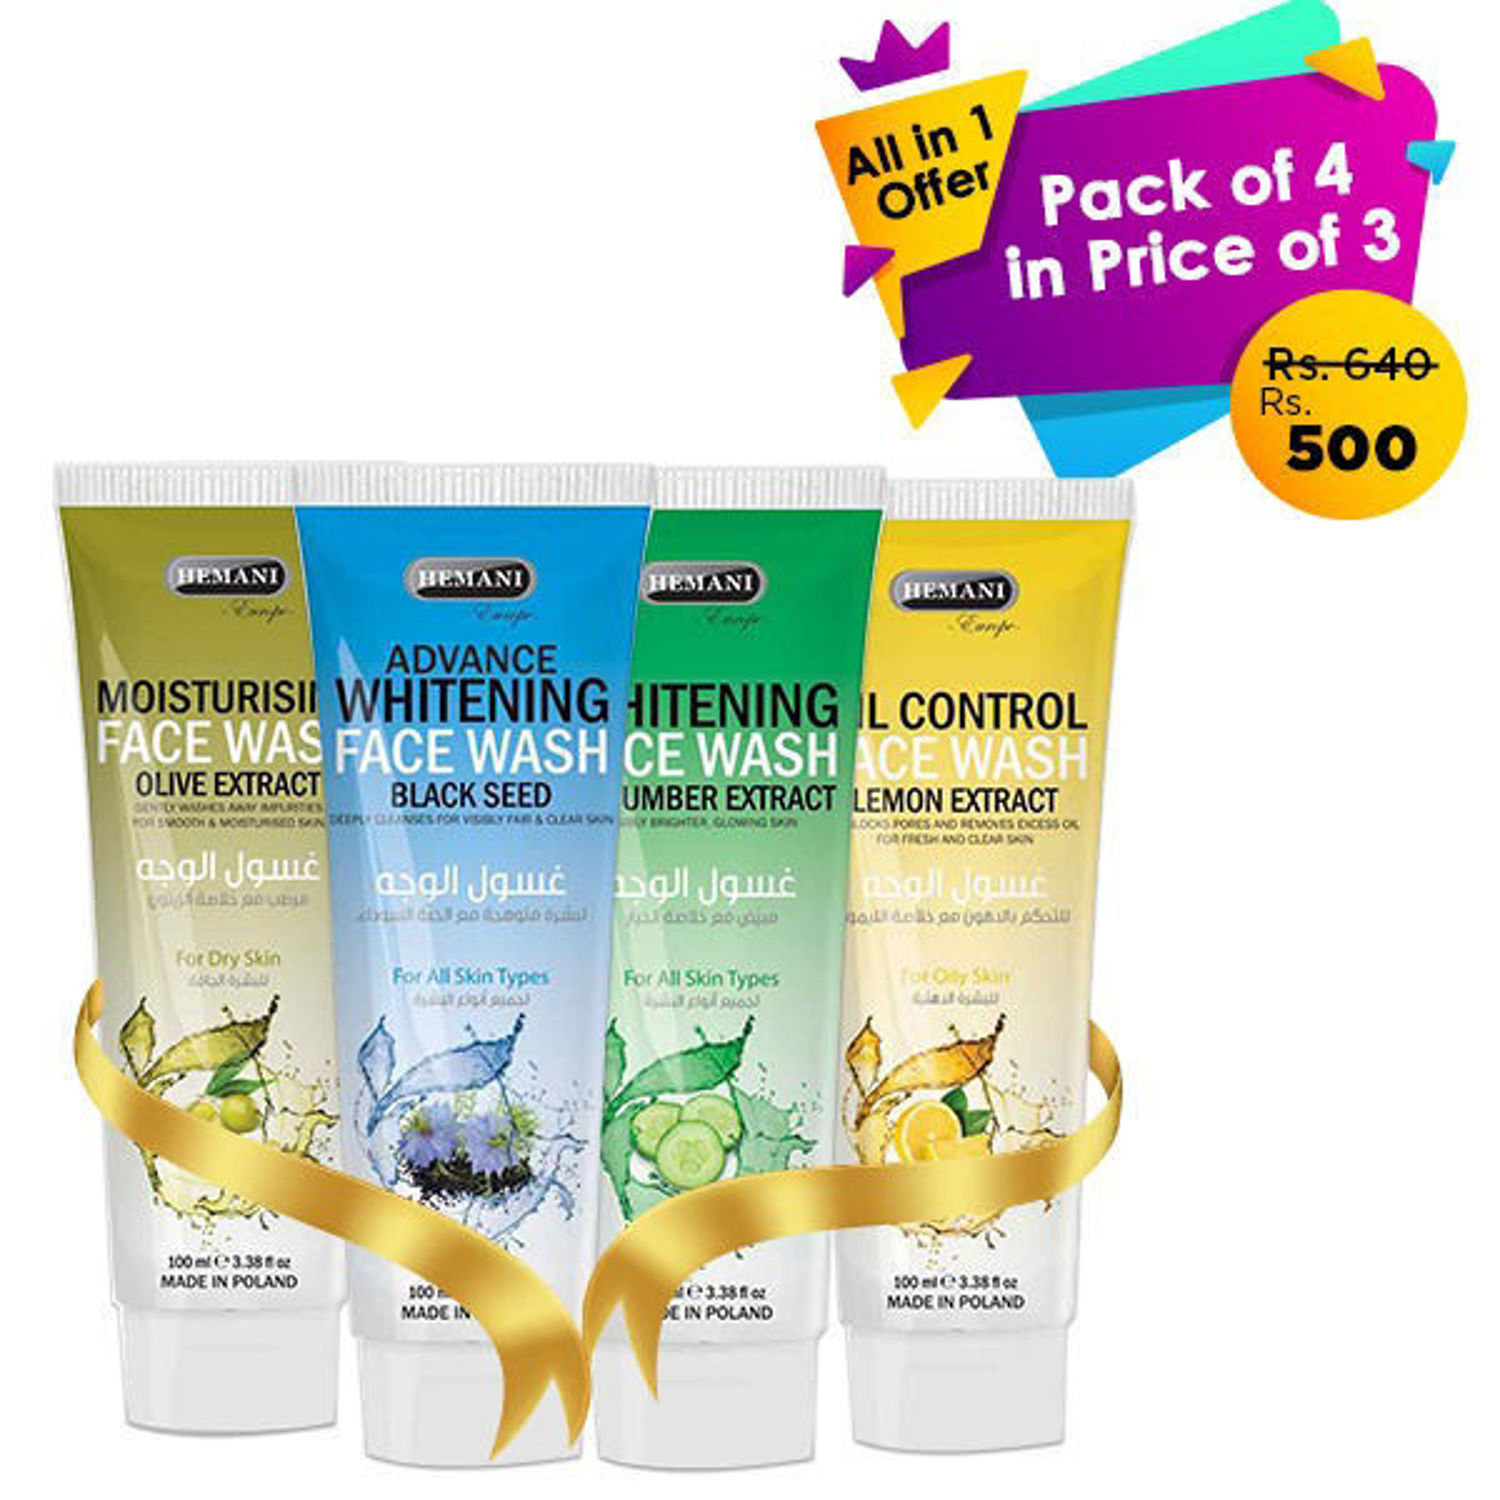 All in 1 pack of 4 in price of 3 (Face Wash)